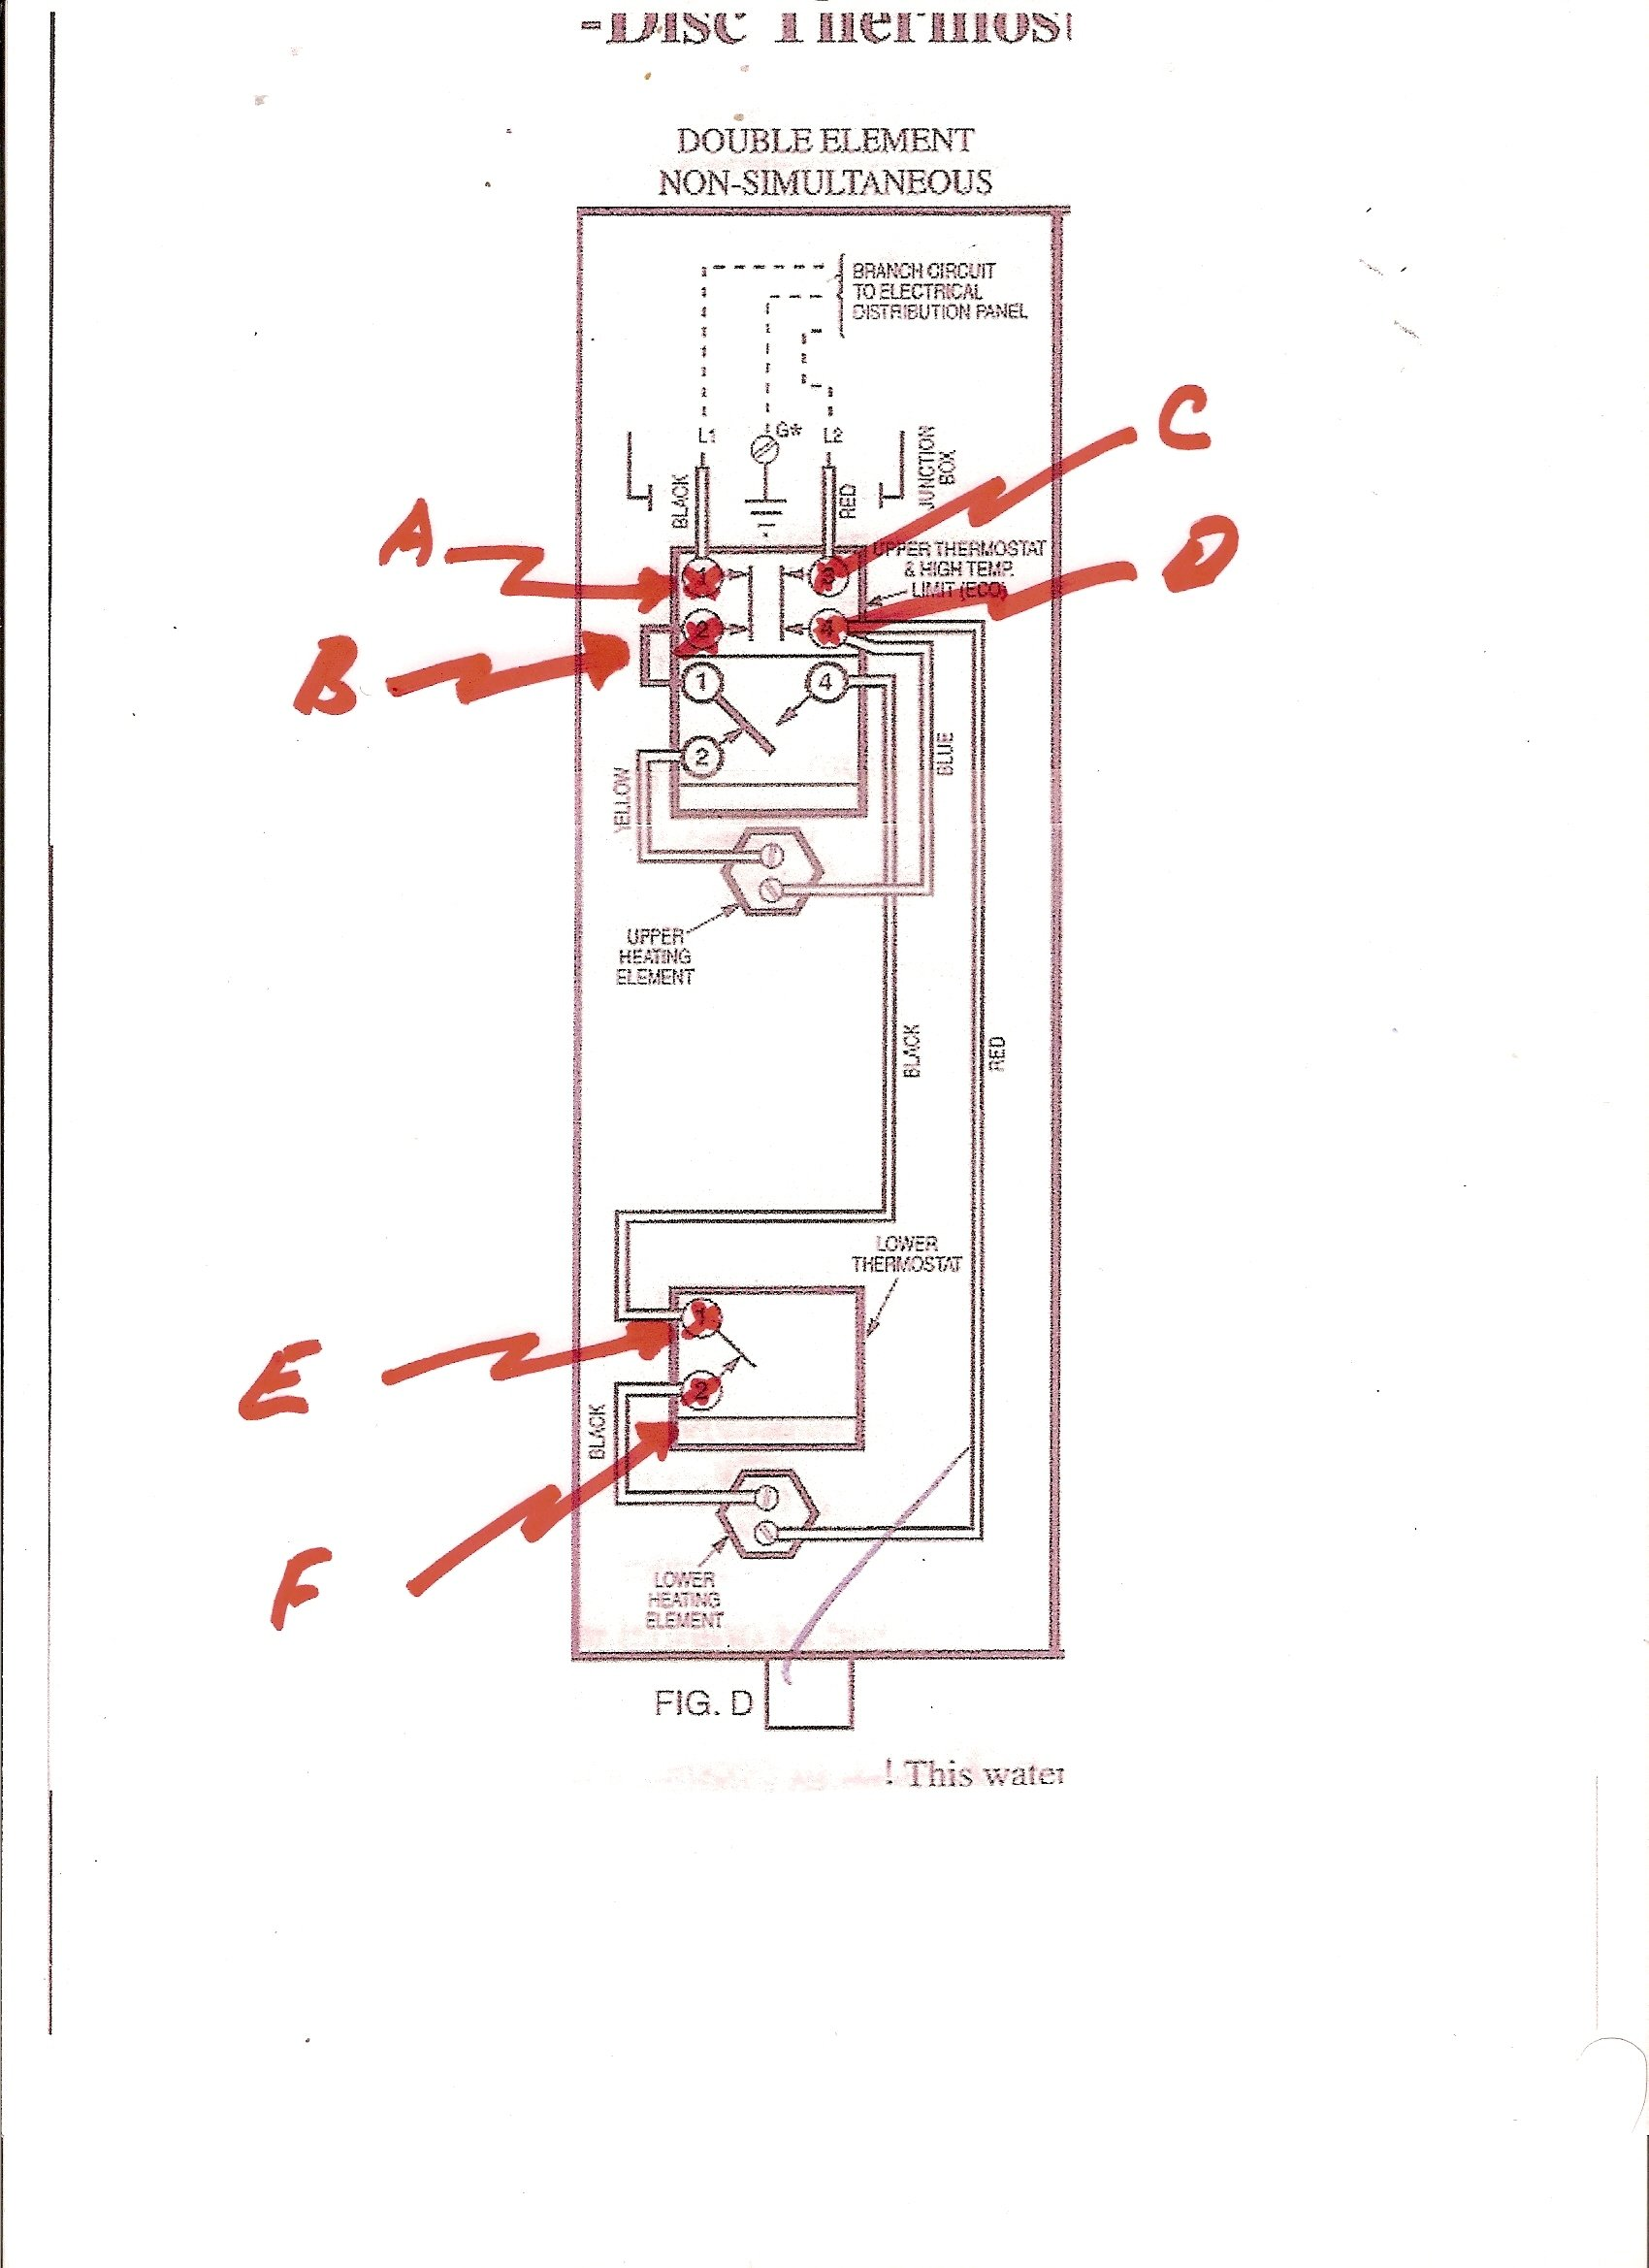 rv wiring diagram for 50 s with 4877u Rheem 50 Gallon Double Element Water Heater on Dcdc likewise Aircond additionally Automatic Changeover Switch For Generator Circuit Diagram together with RV50 additionally Wiring Diagram For 30   Rv Receptacle.